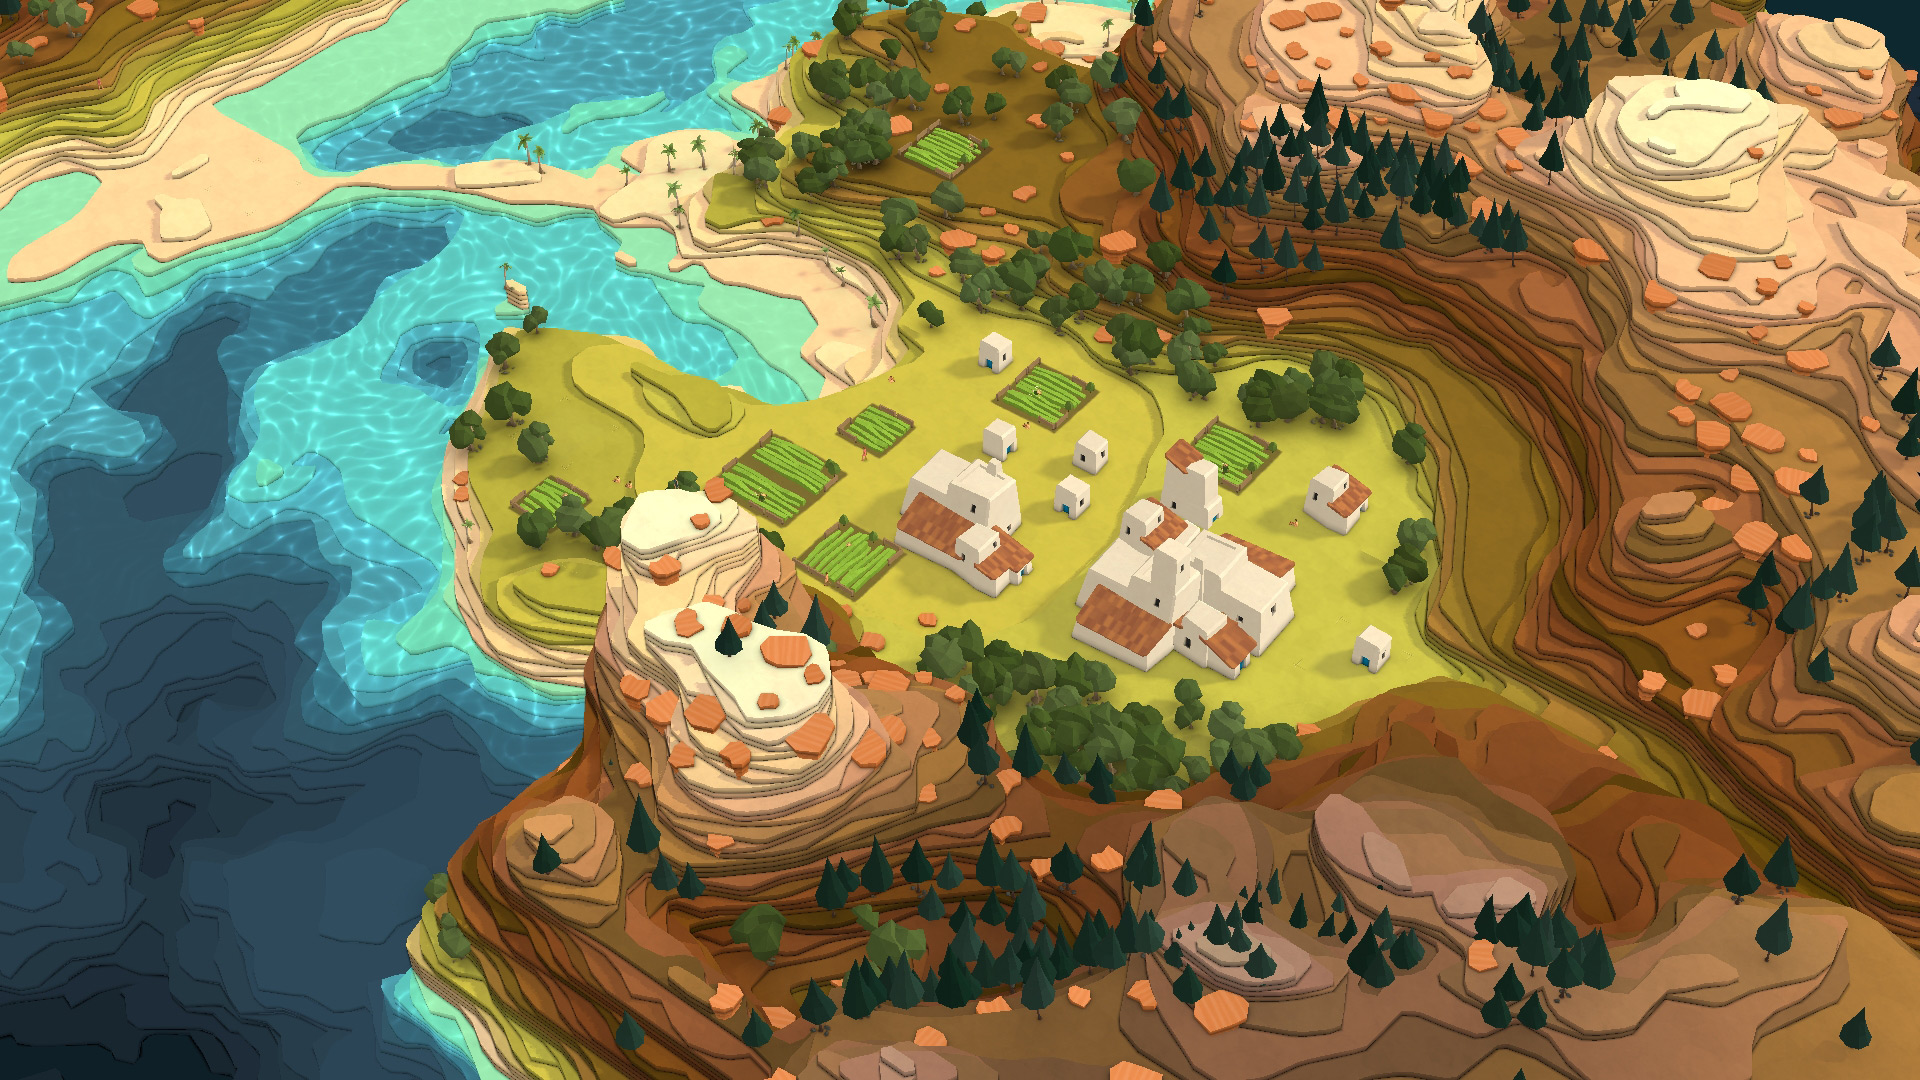 Peter Molyneux's latest god game Godus comes to iOS today